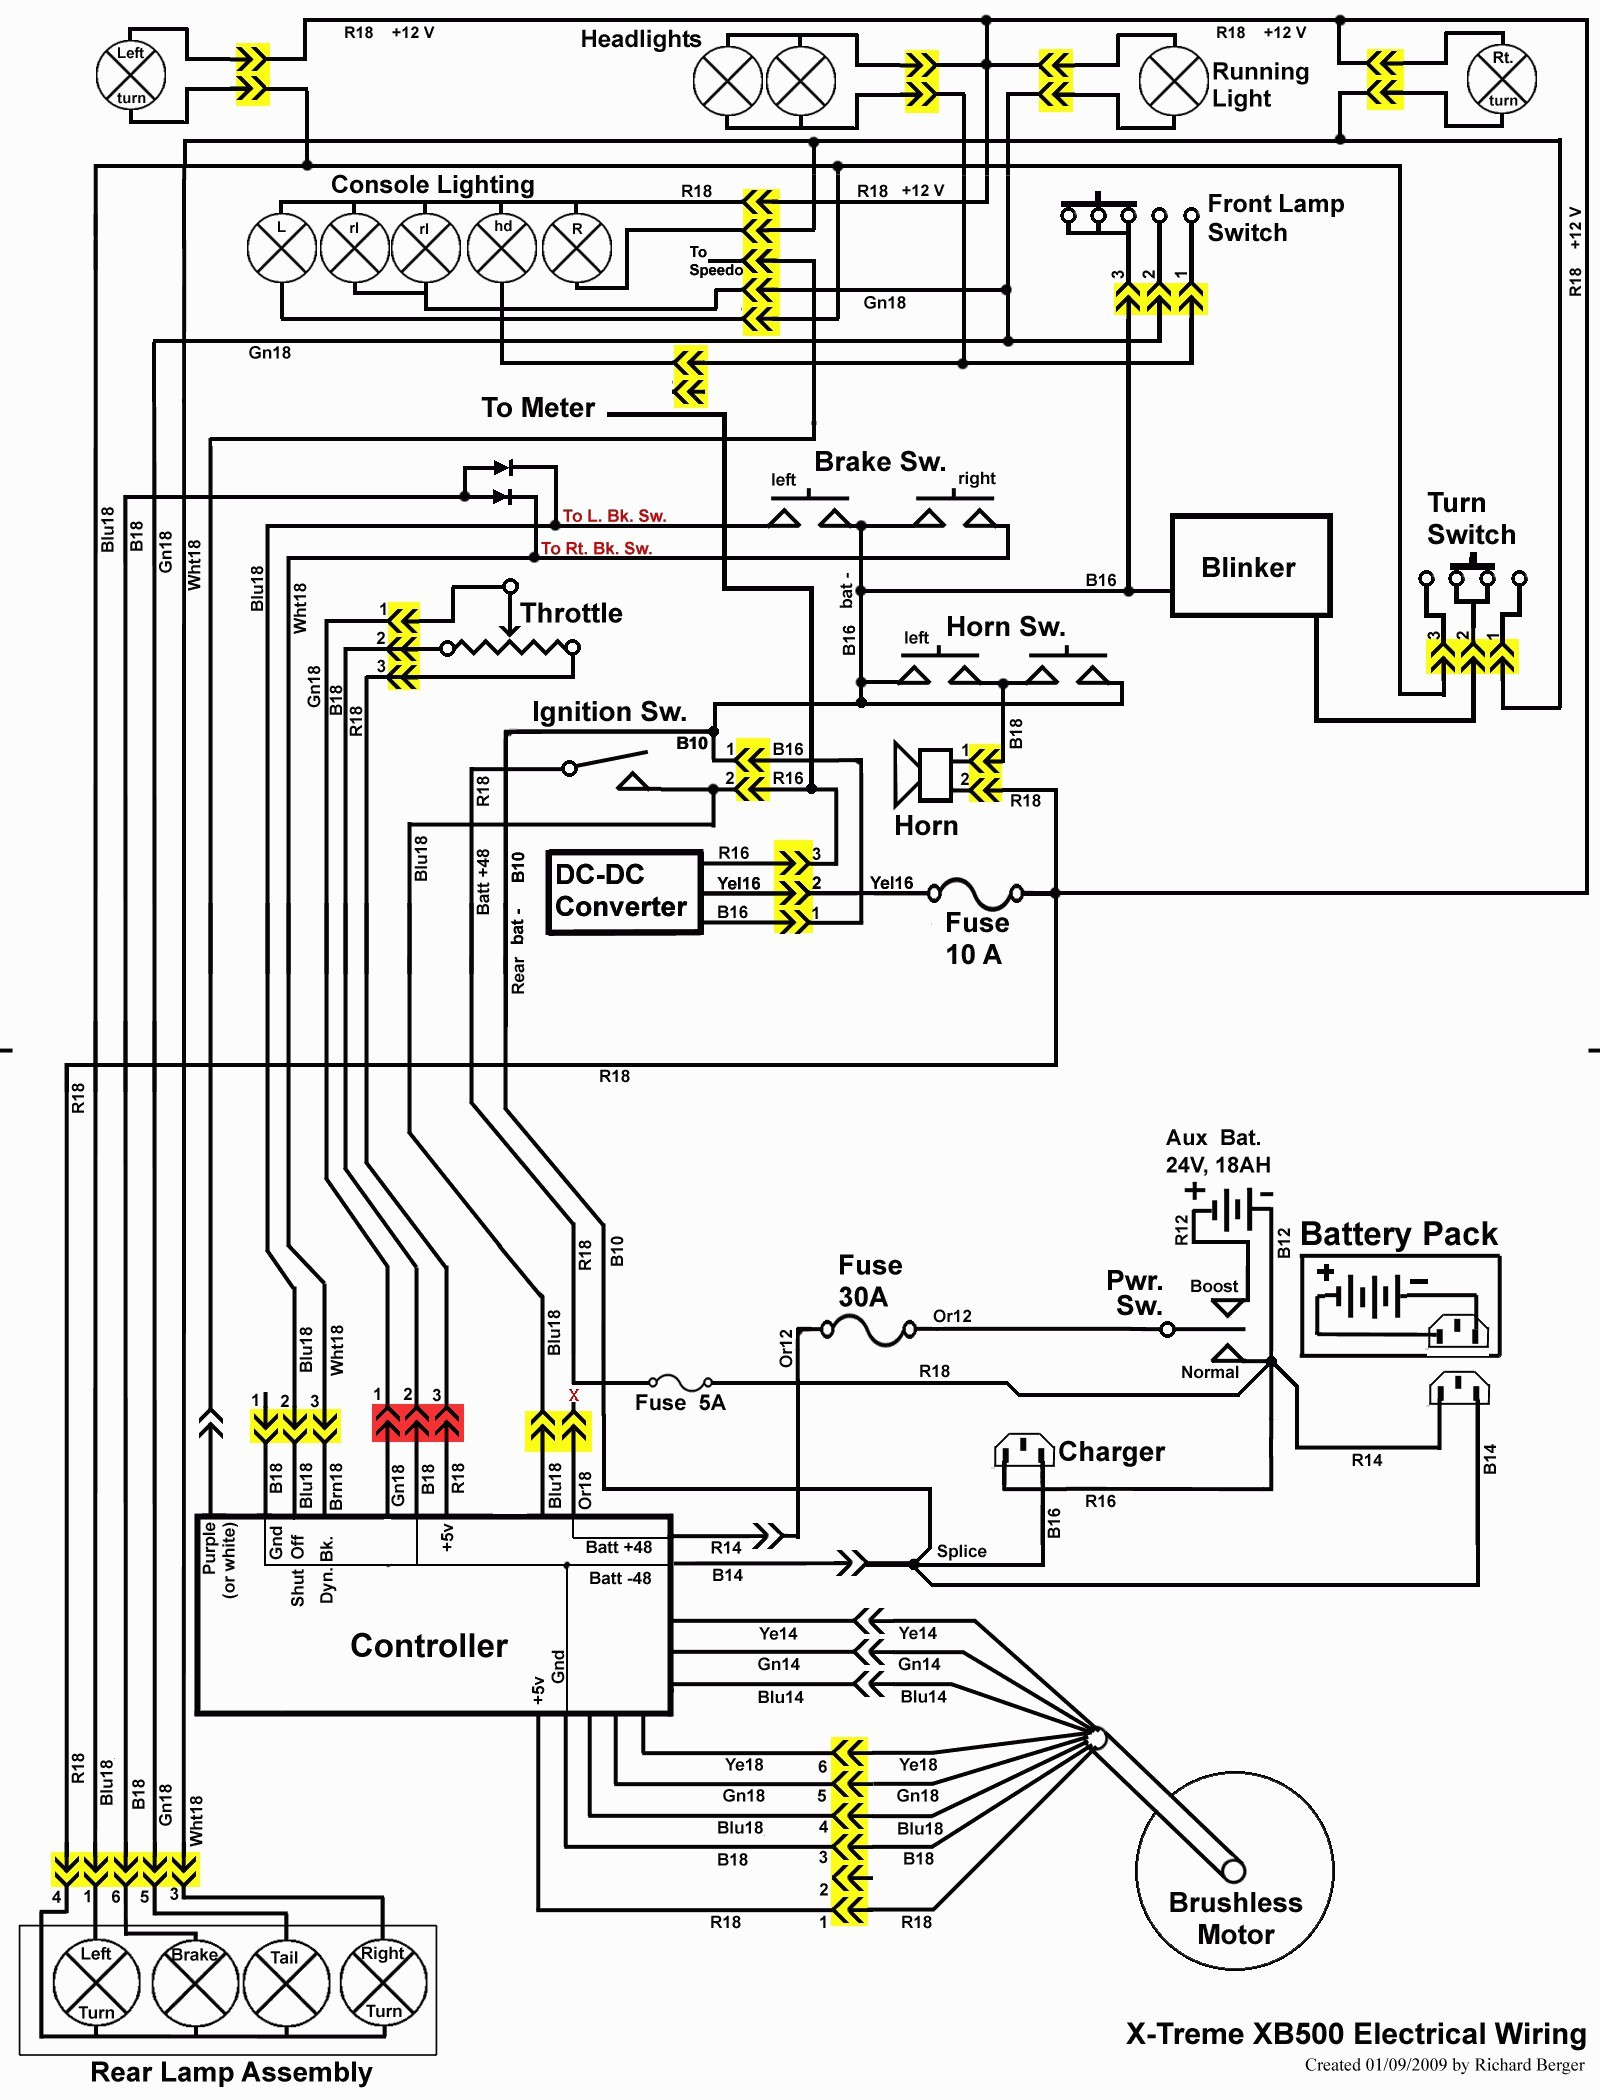 Xtreme Wiring Diagram